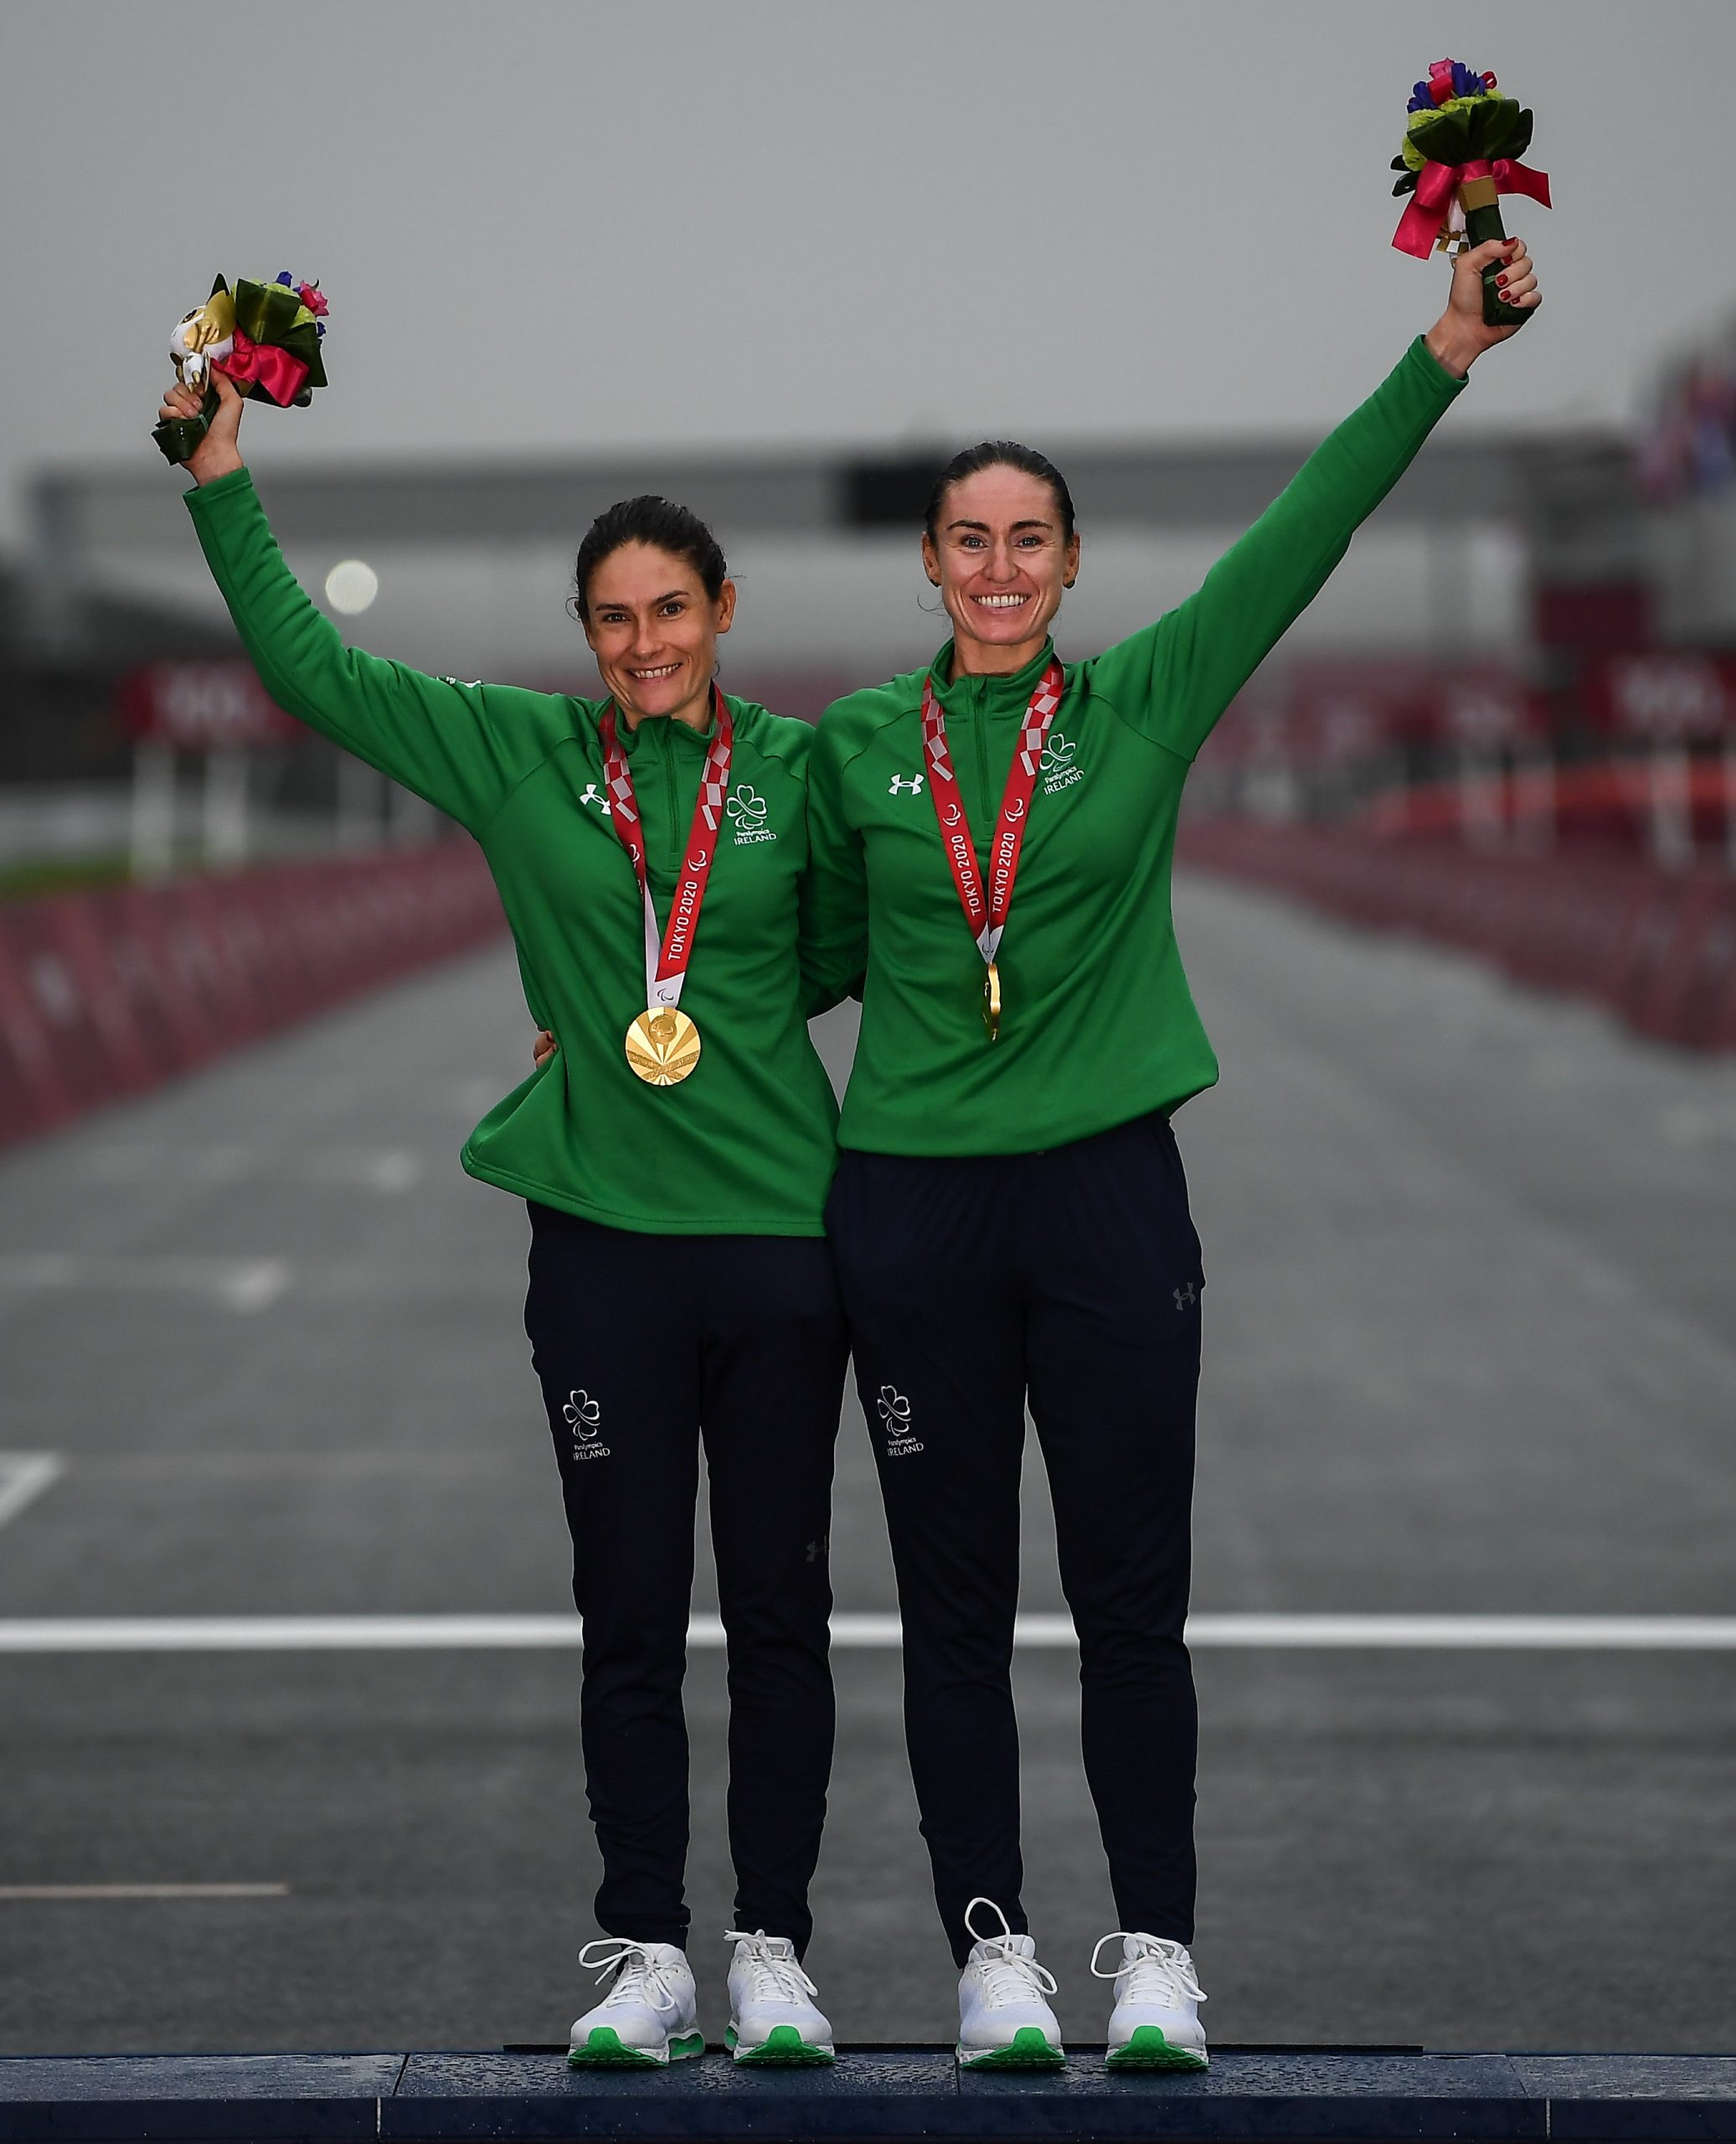 3 September 2021; Eve McCrystal, right, and Katie George Dunlevy of Ireland on the podium with their gold medals after winning the Women's B road race at the Fuji International Speedway on day ten during the 2020 Tokyo Summer Olympic Games in Shizuoka, Japan. Photo by David Fitzgerald/Sportsfile *** NO REPRODUCTION FEE ***